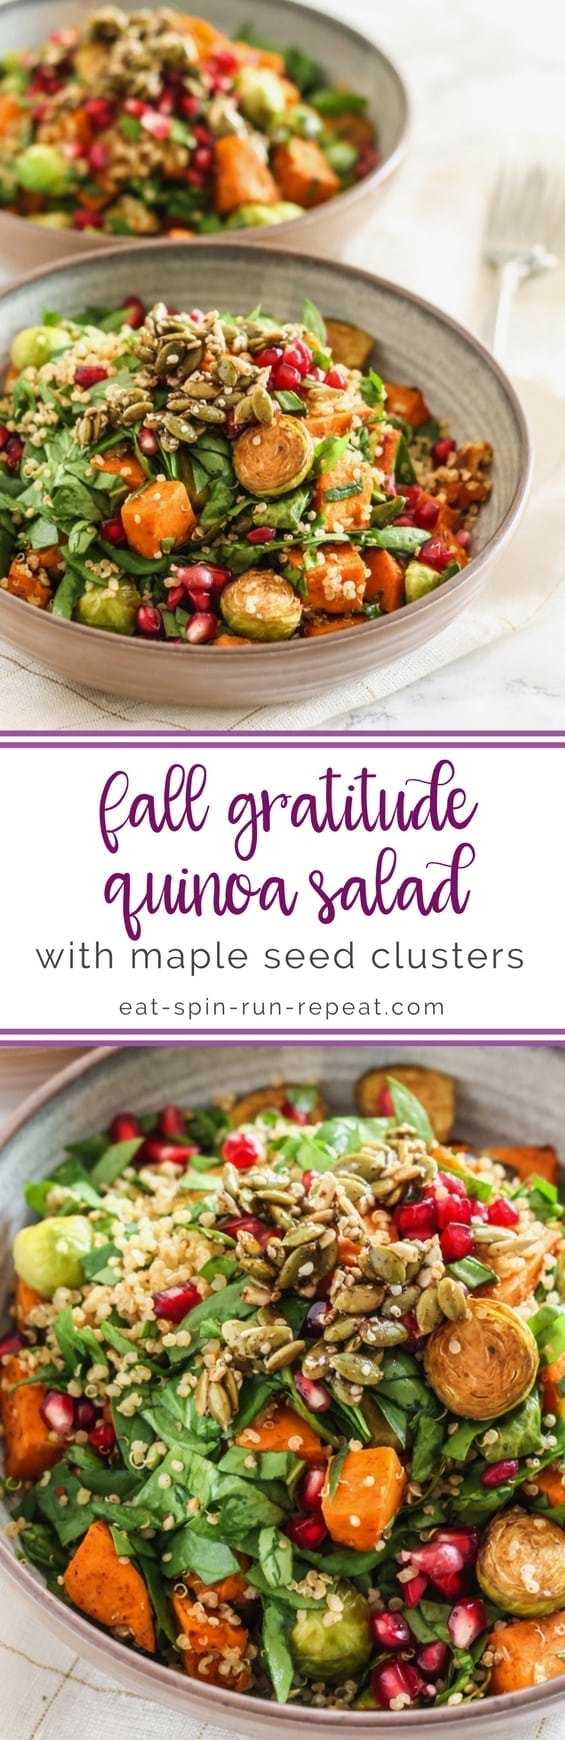 Fall Gratitude Quinoa Salad with Maple Seed Clusters || #vegan #antiinflammatory #glutenfree || Eat Spin Run Repeat